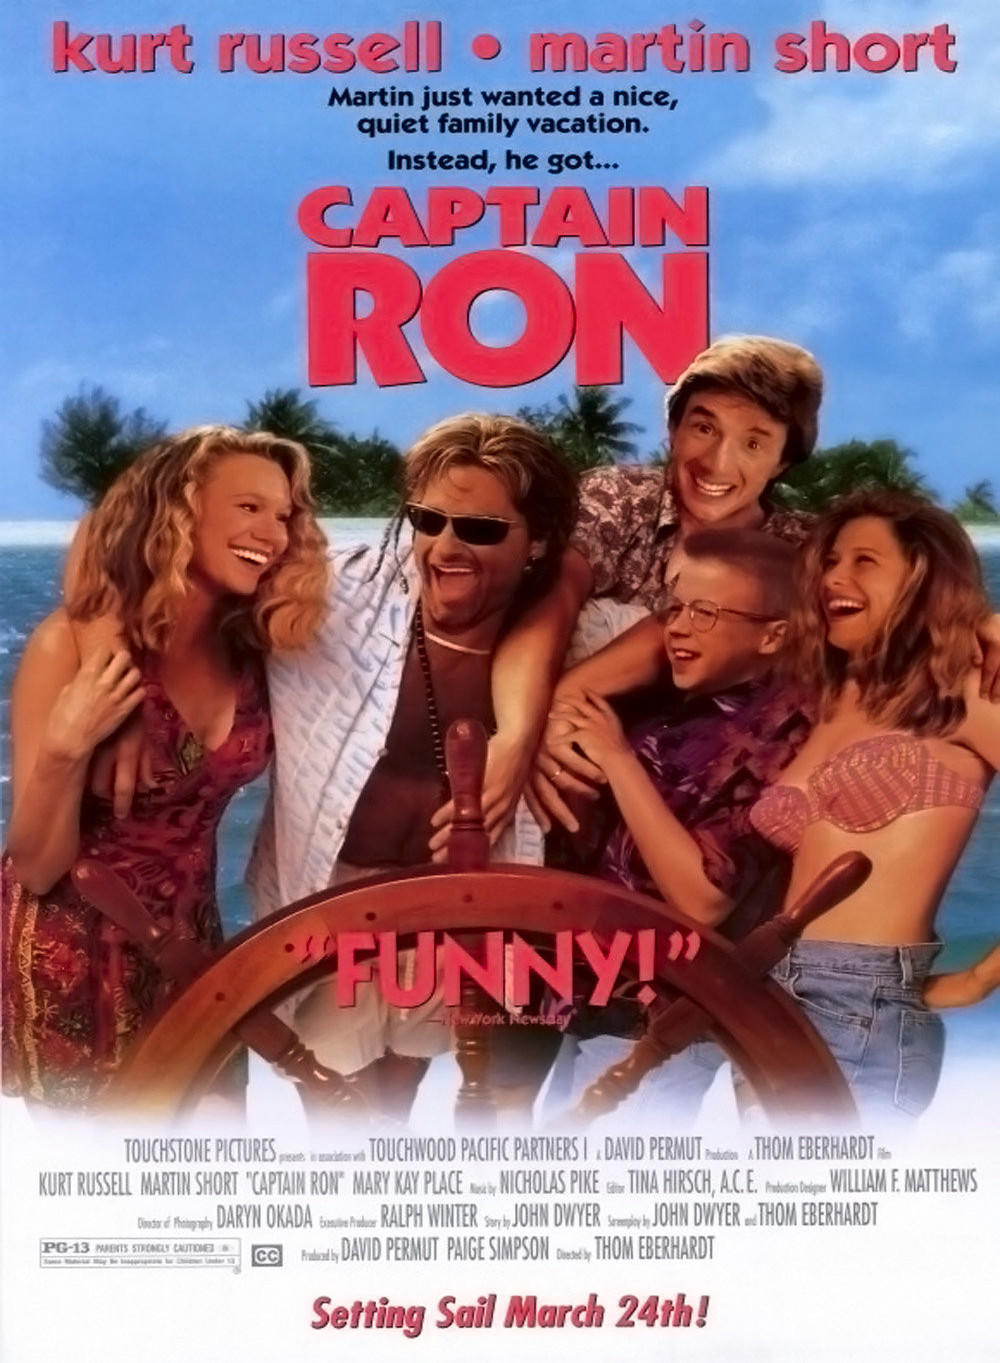 captain ron affiche disney poster touchstone pictures